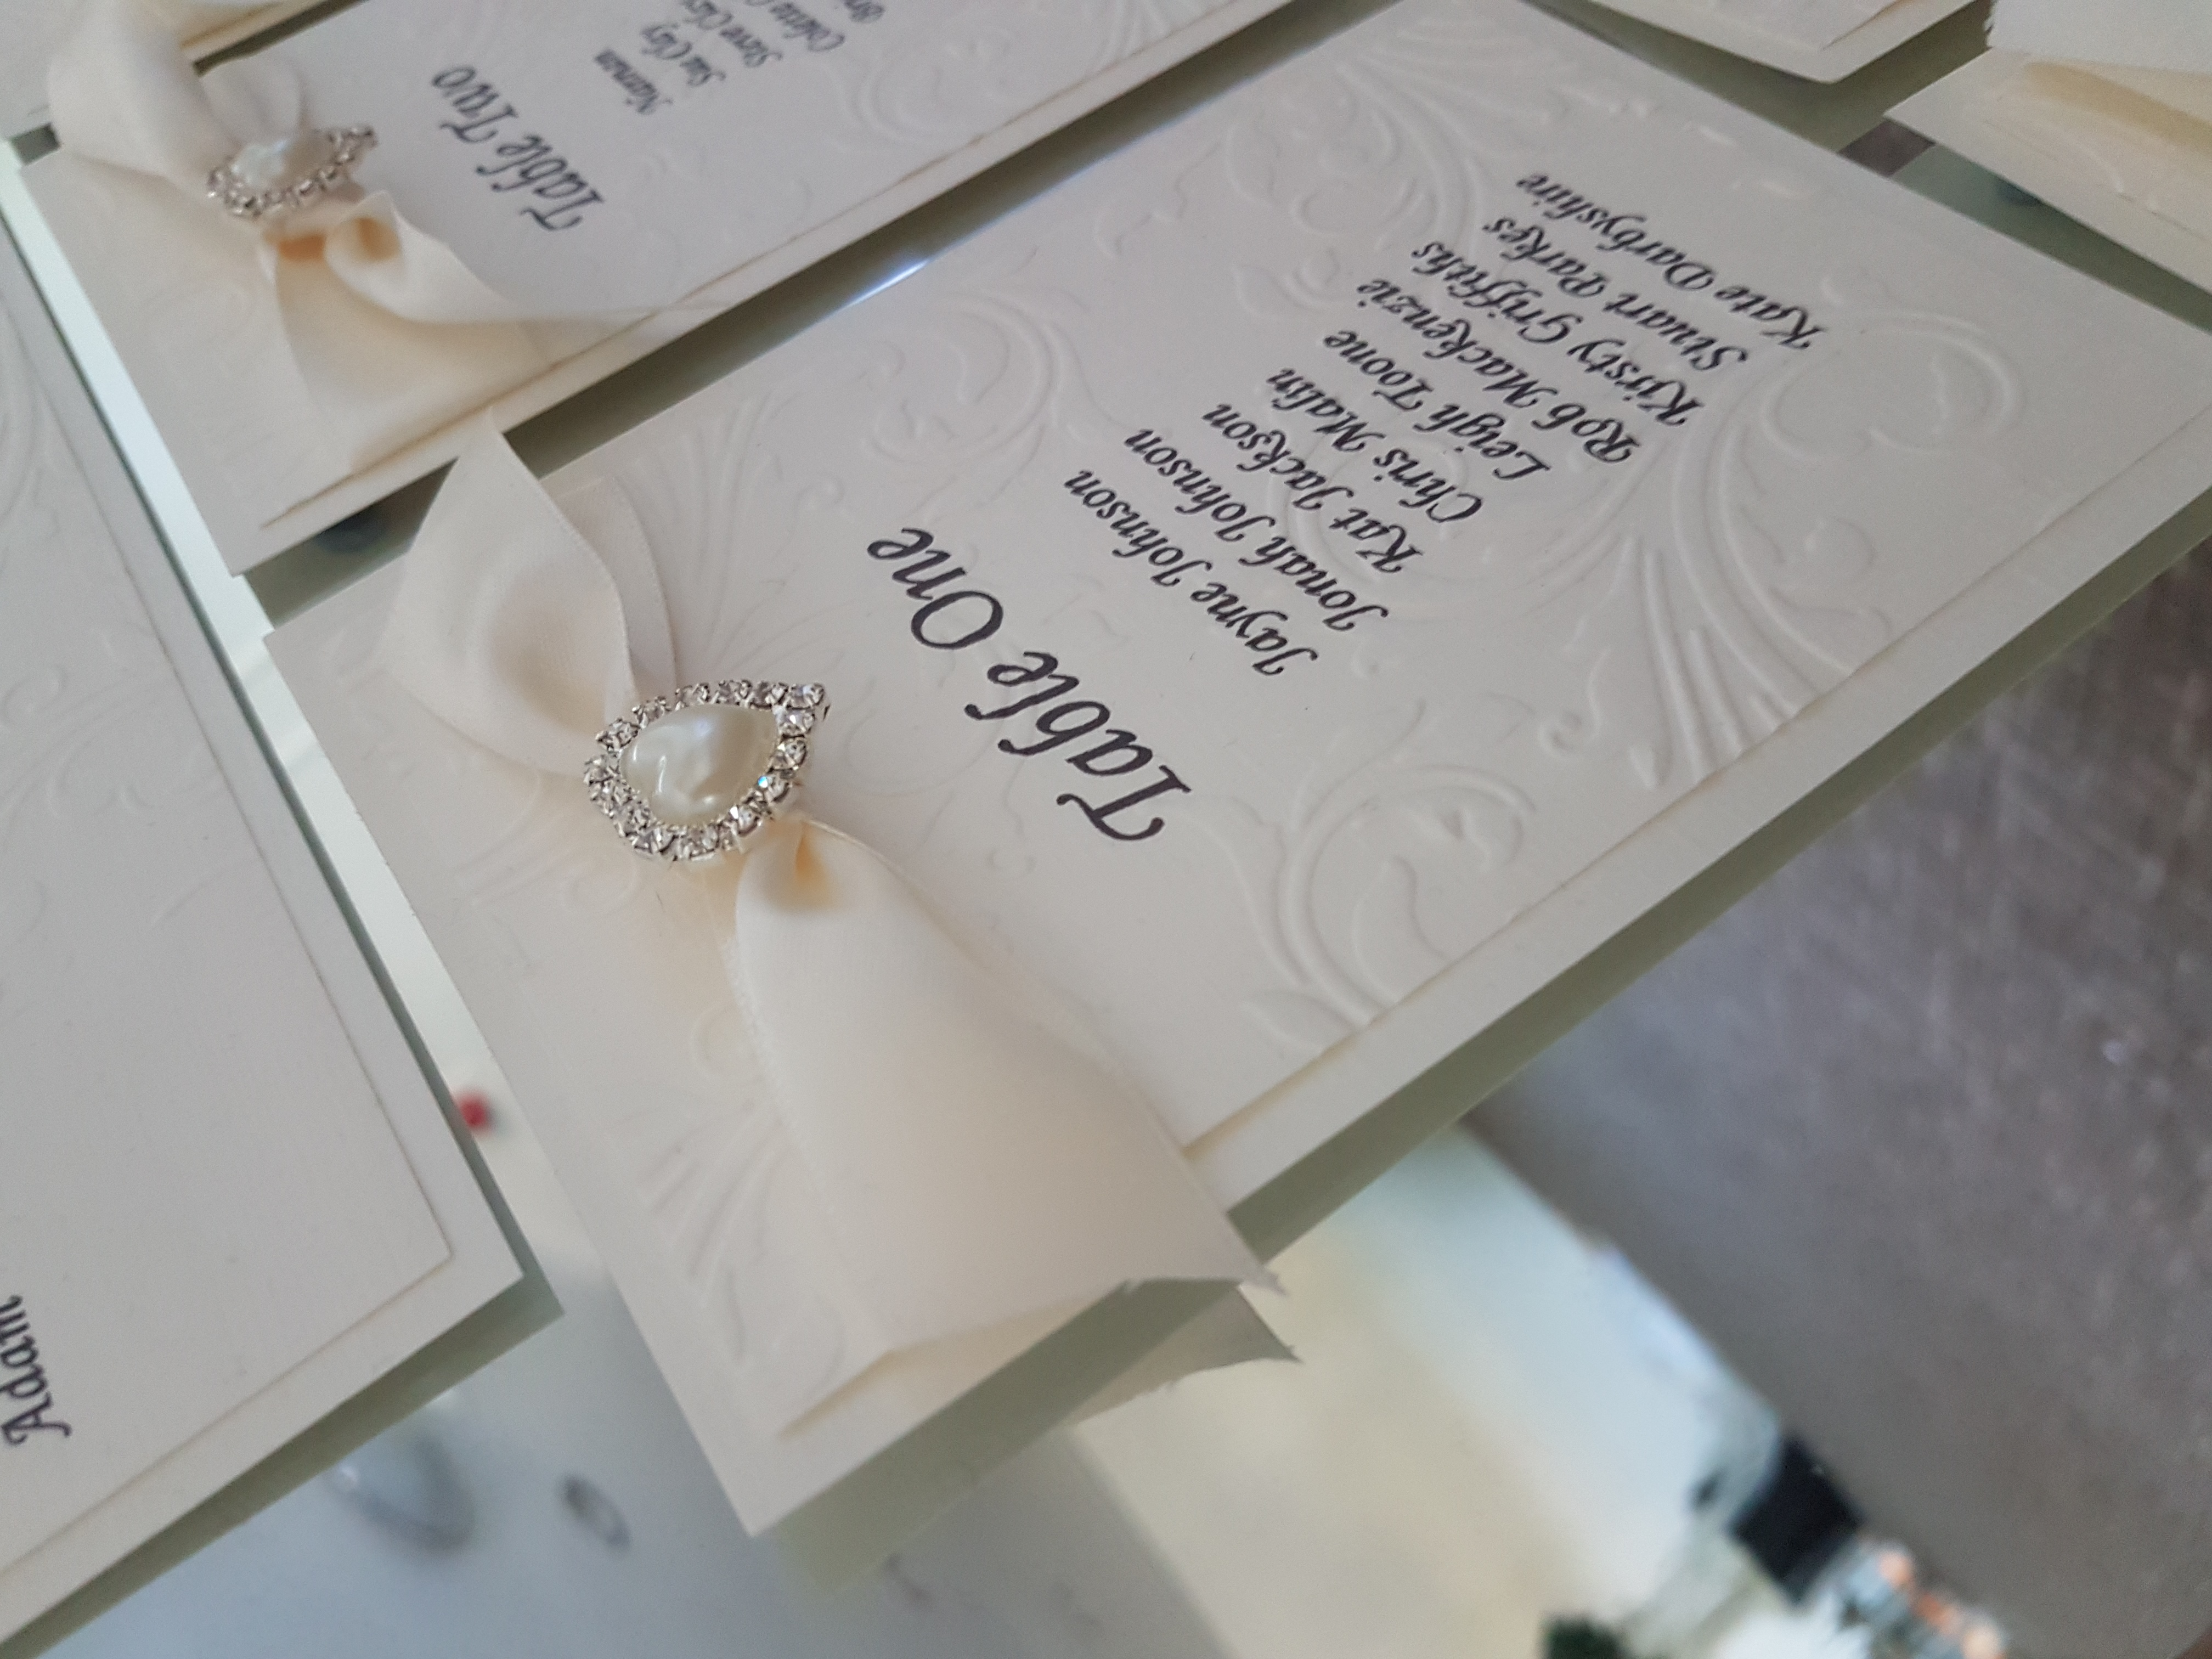 Tying the knot table plan close view